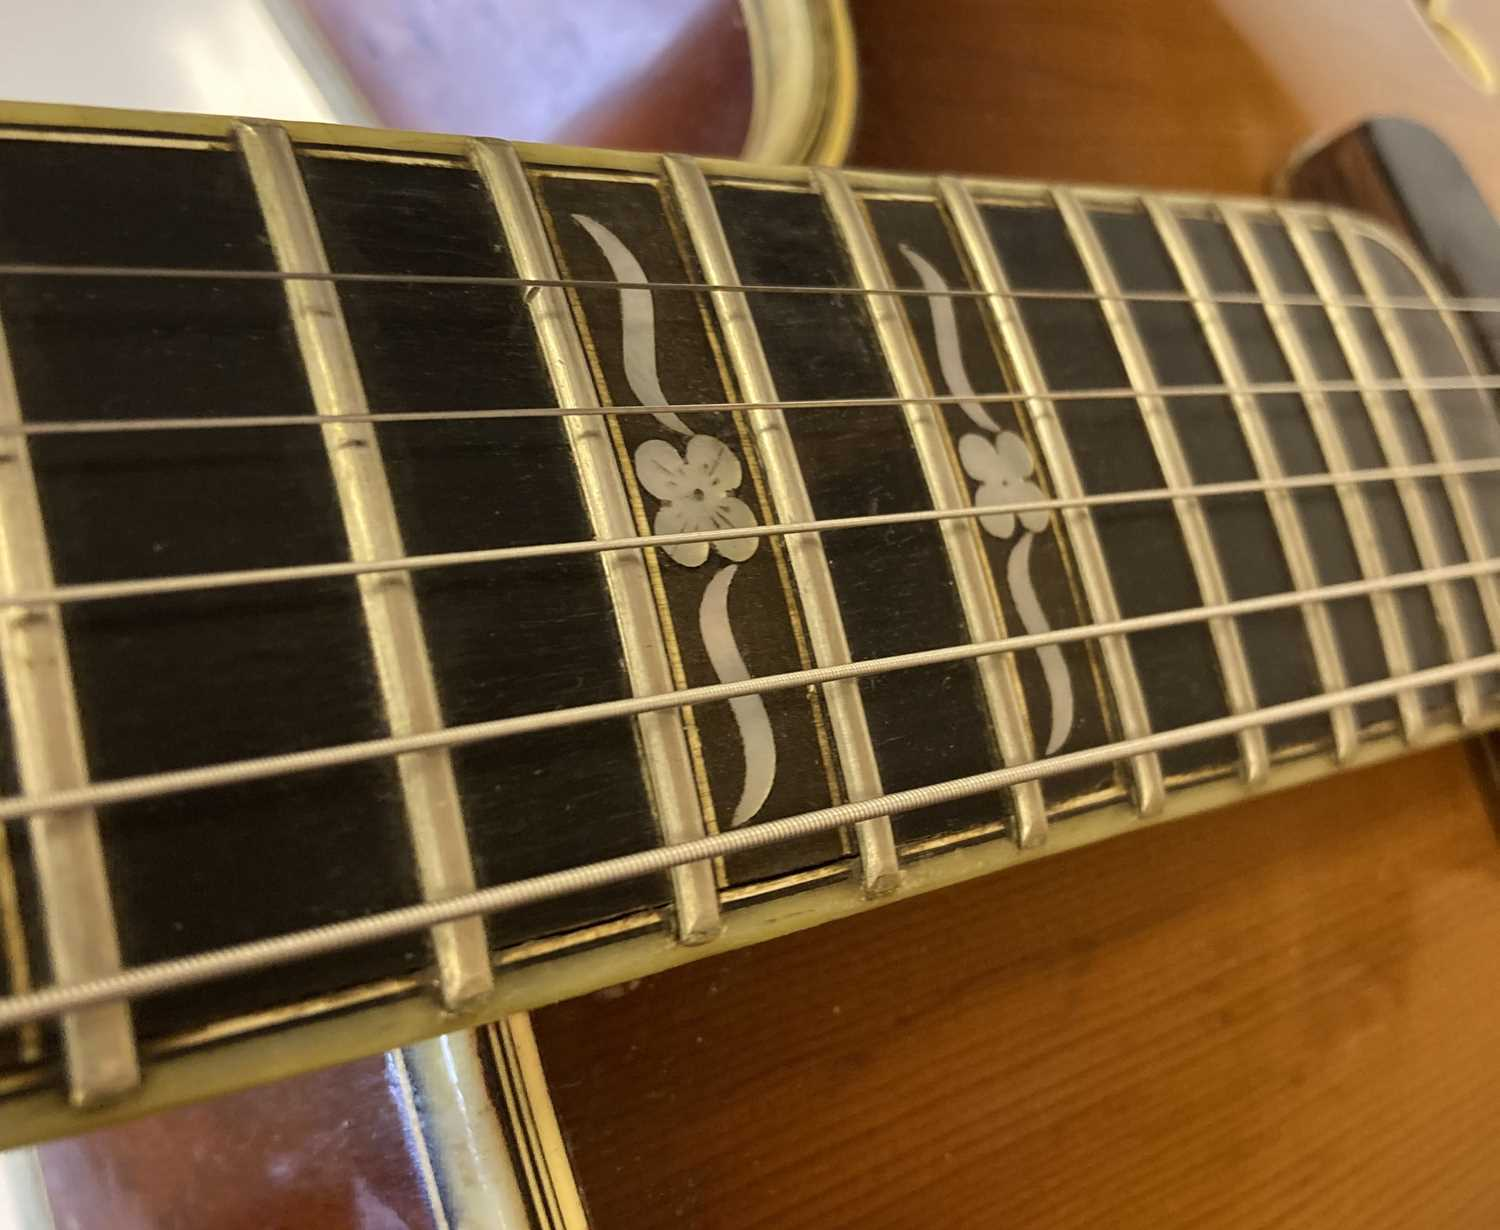 HOFNER - 1957 COMMITTEE ELECTRIC GUITAR - USED AS RESIDENT GUITAR AT THE 2'IS COFFEE CLUB - Image 15 of 17